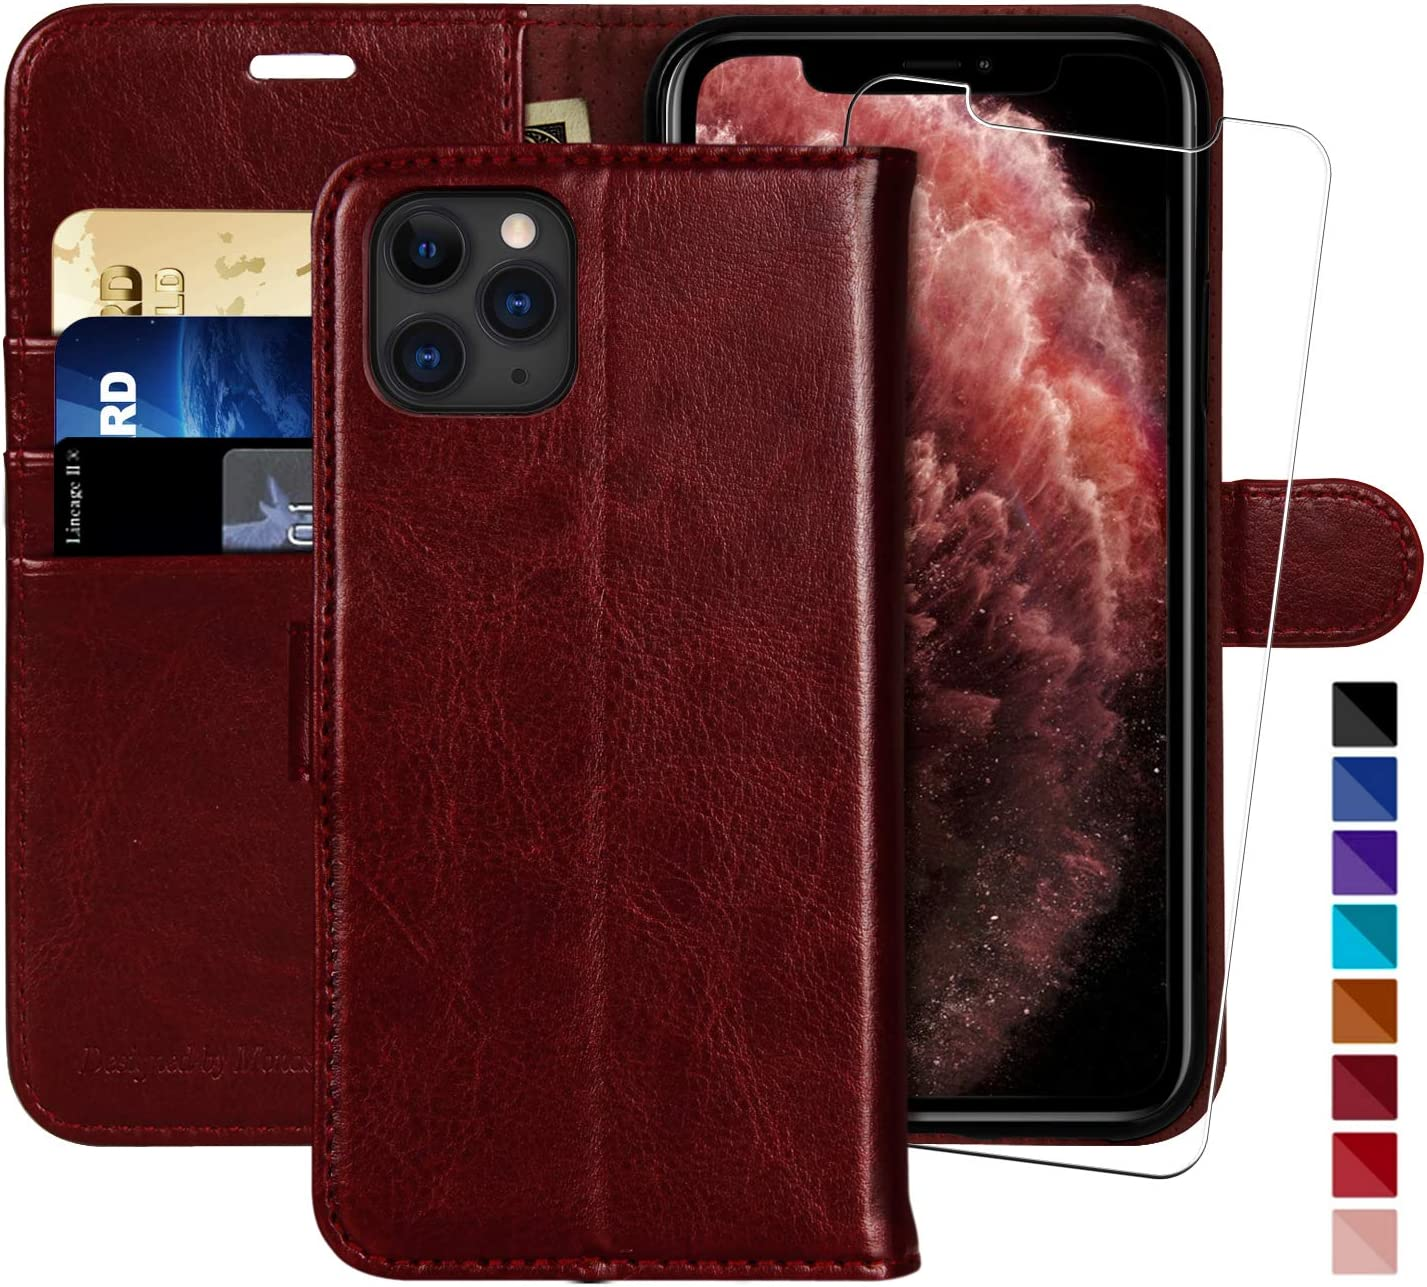 iPhone 11 Pro Max Wallet Case,6.5-inch,MONASAY [Glass Screen Protector Included] [RFID Blocking] Flip Folio Leather Cell Phone Cover with Credit Card Holder for iPhone 11 Pro Max